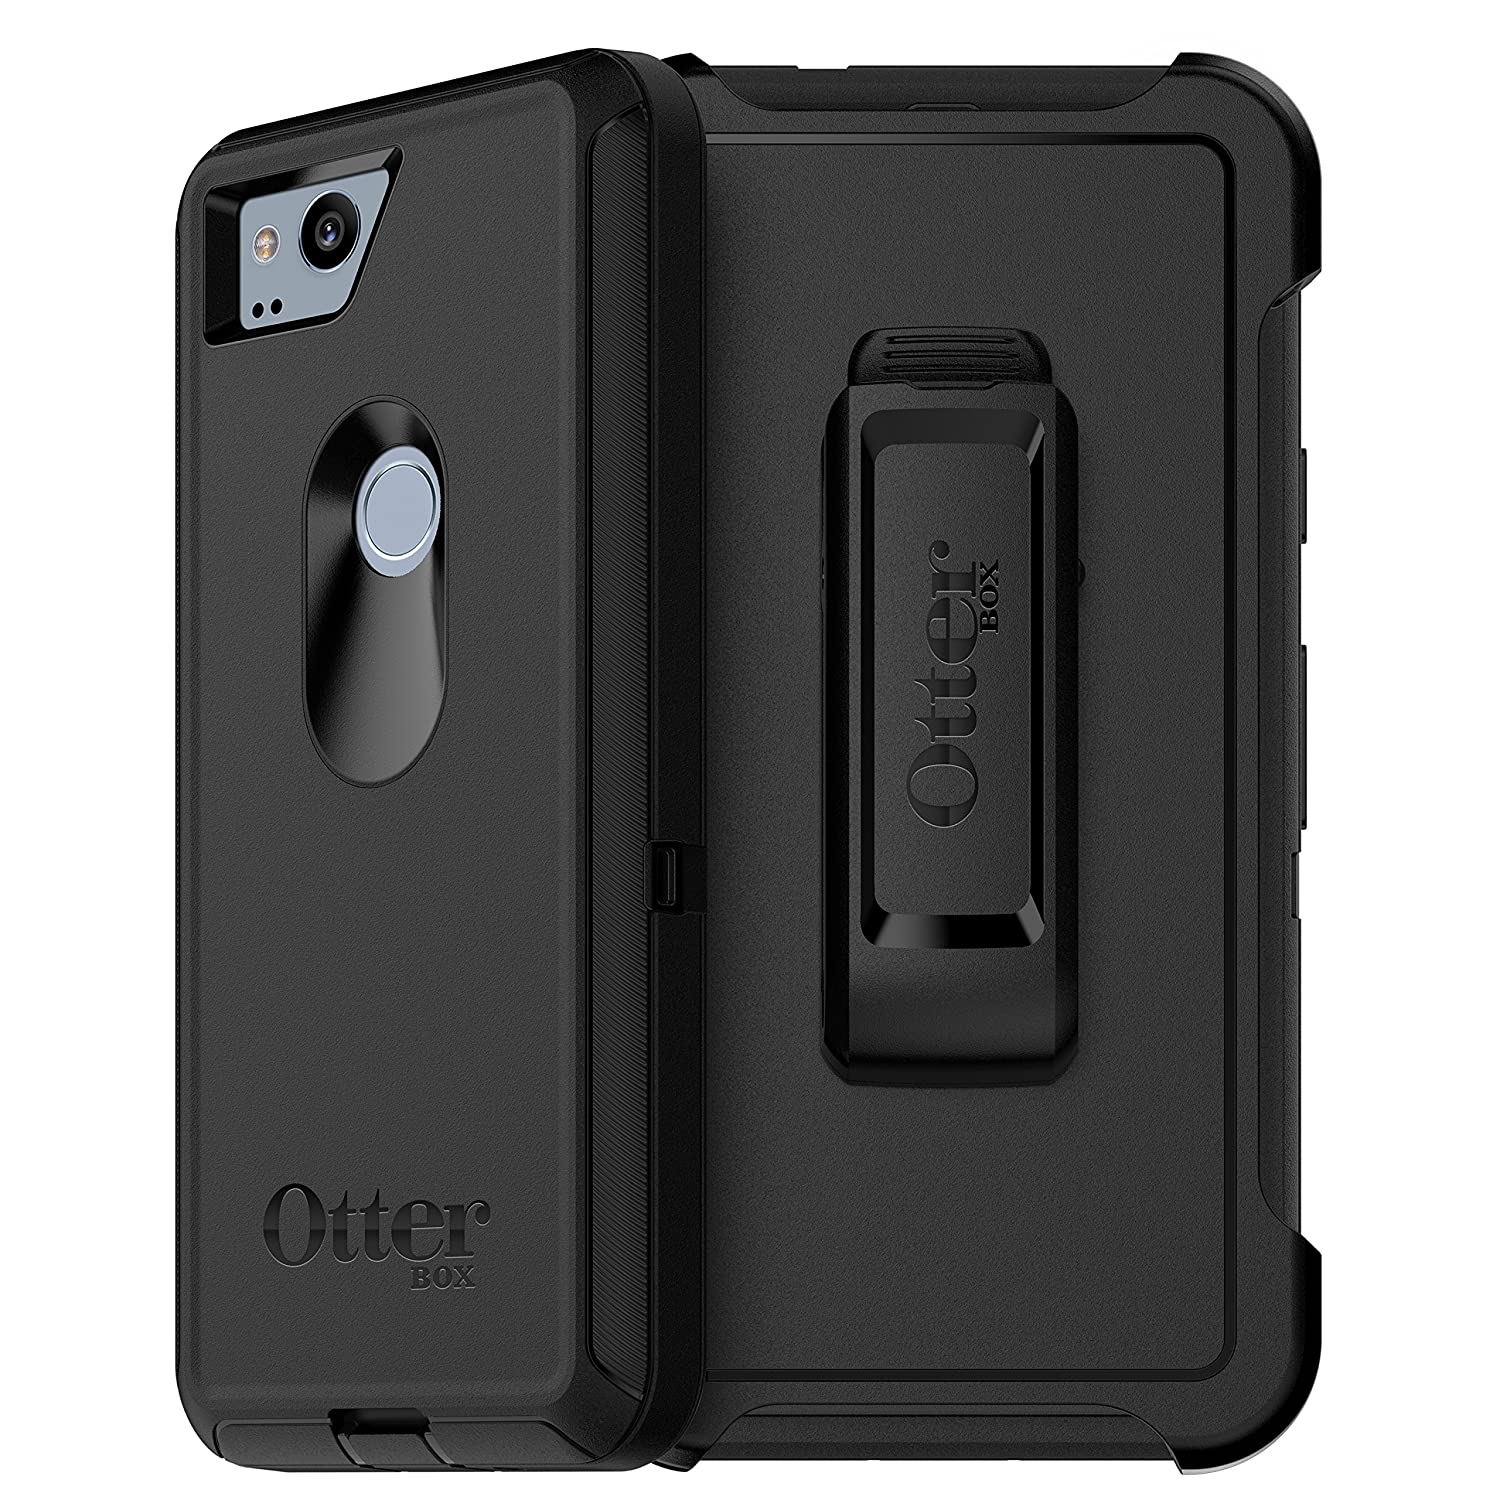 newest c9b47 d47a9 OtterBox DEFENDER SERIES Case for Google Pixel 2 - Retail Packaging - BLACK